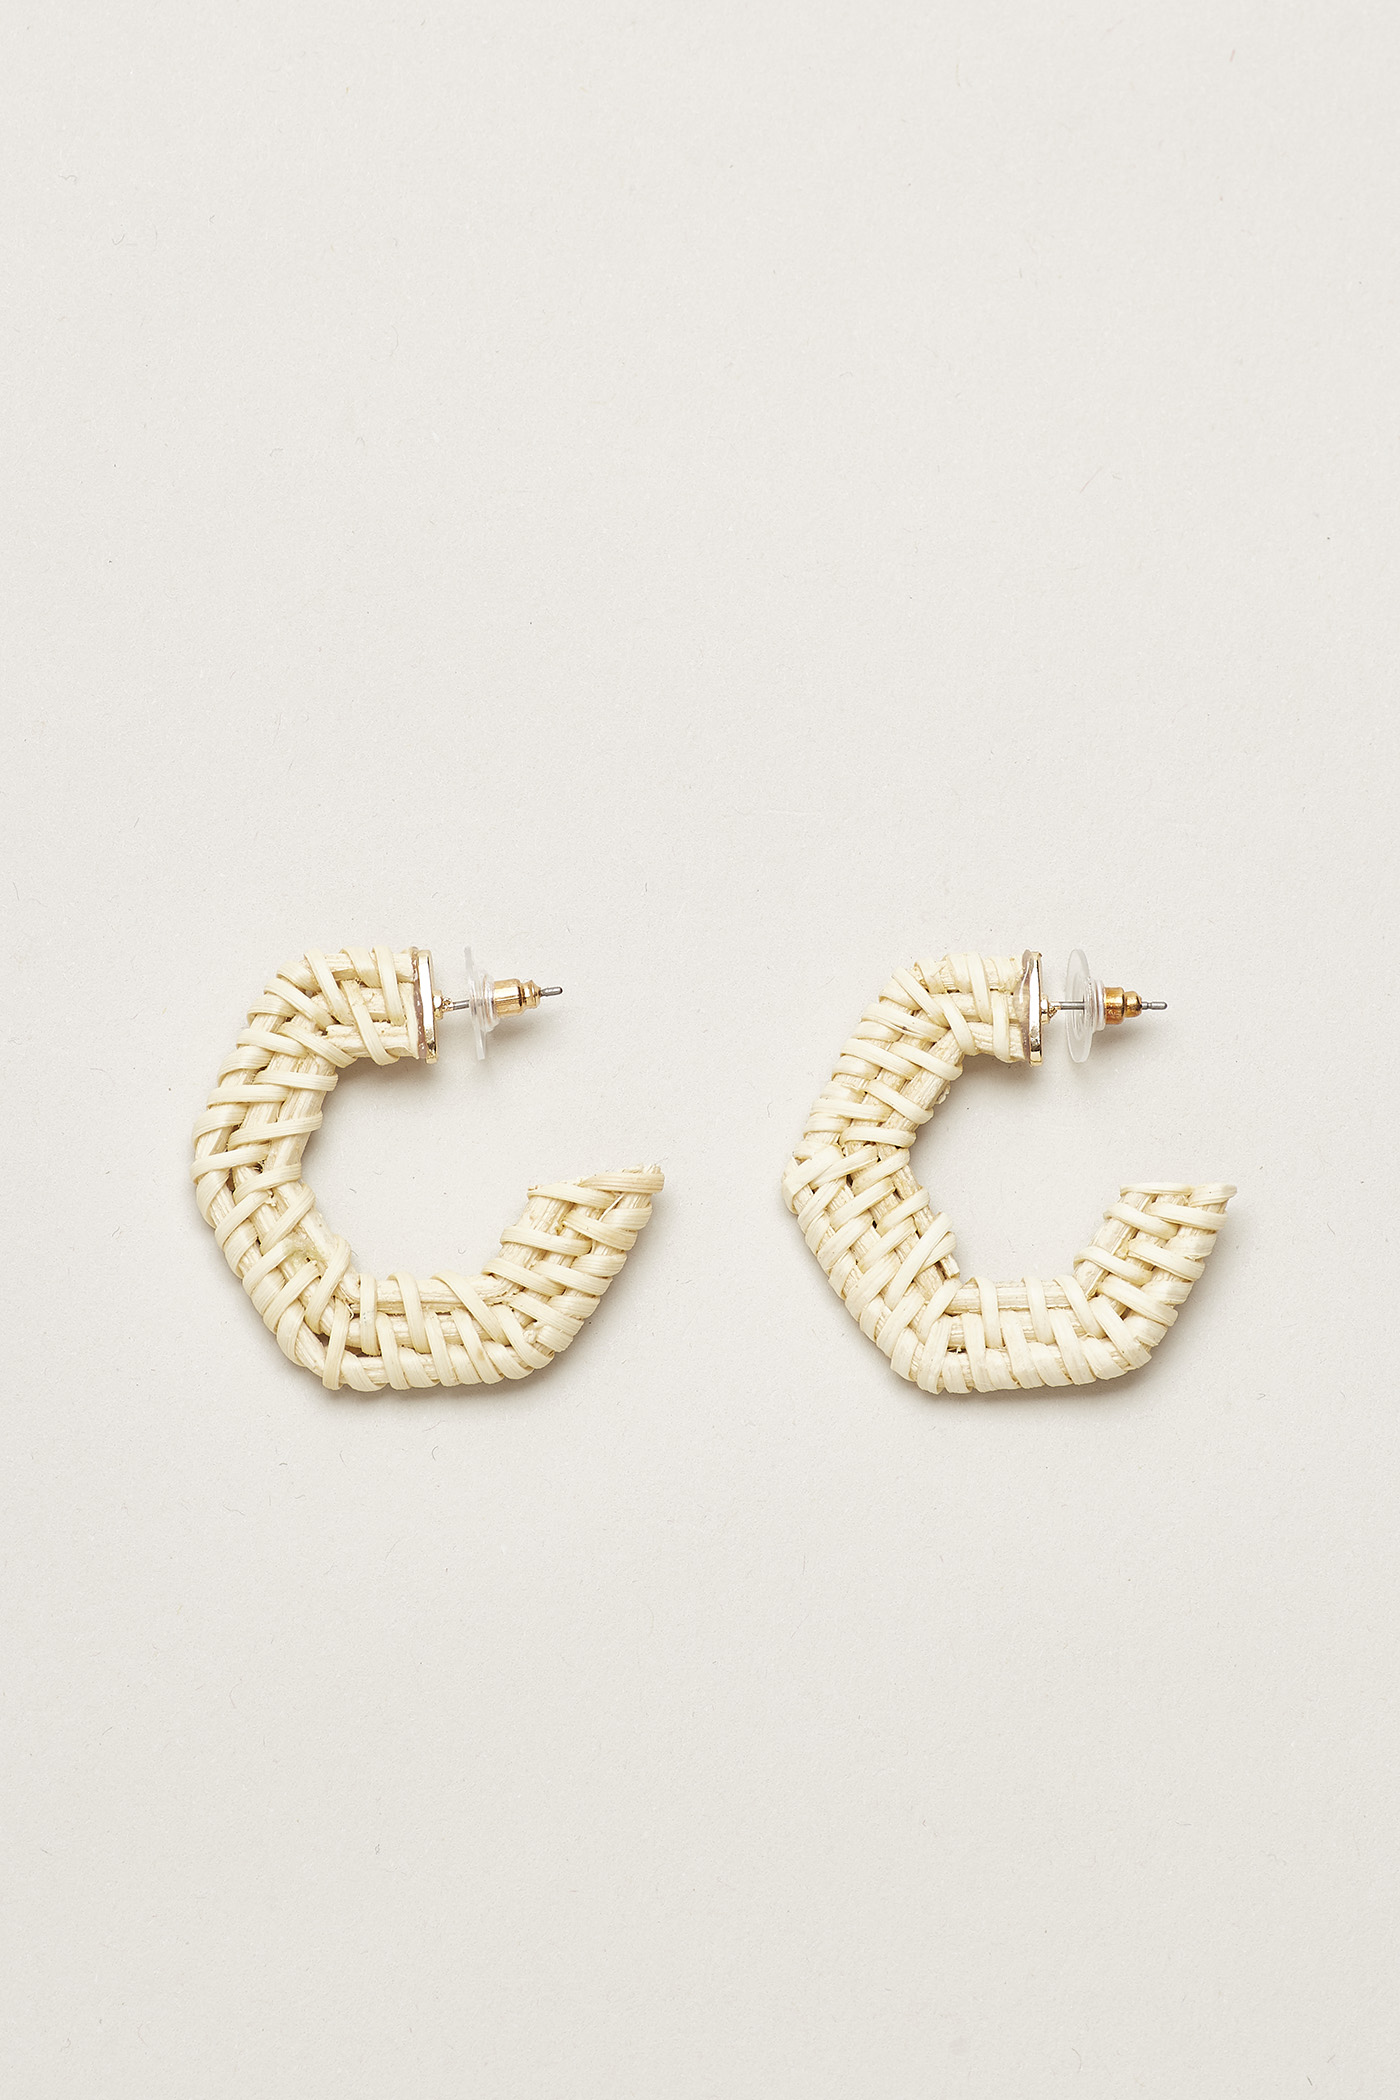 Tuva Weaved Earrings